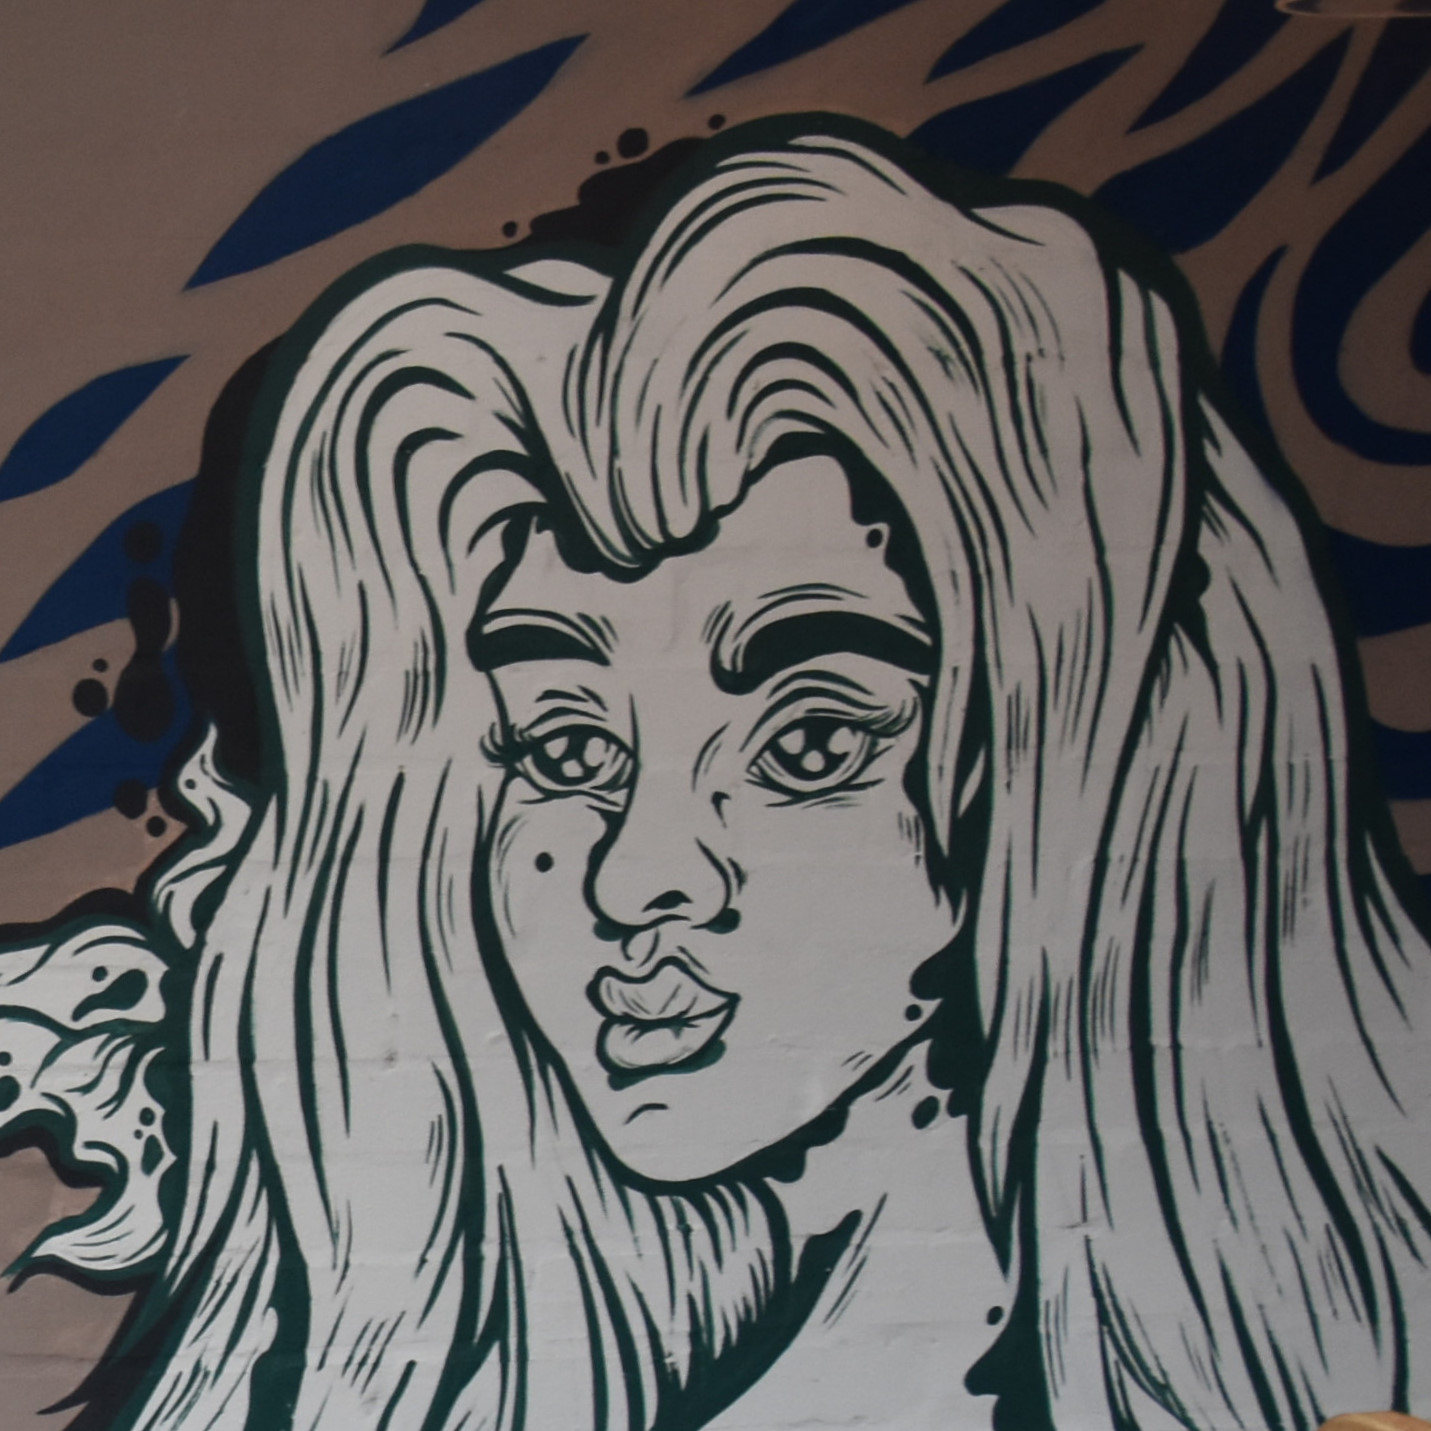 Artwork from the upstairs wall of one of the new rooms in Liar Liar, the head of woman with long, wavy hair in a black and white line drawing.